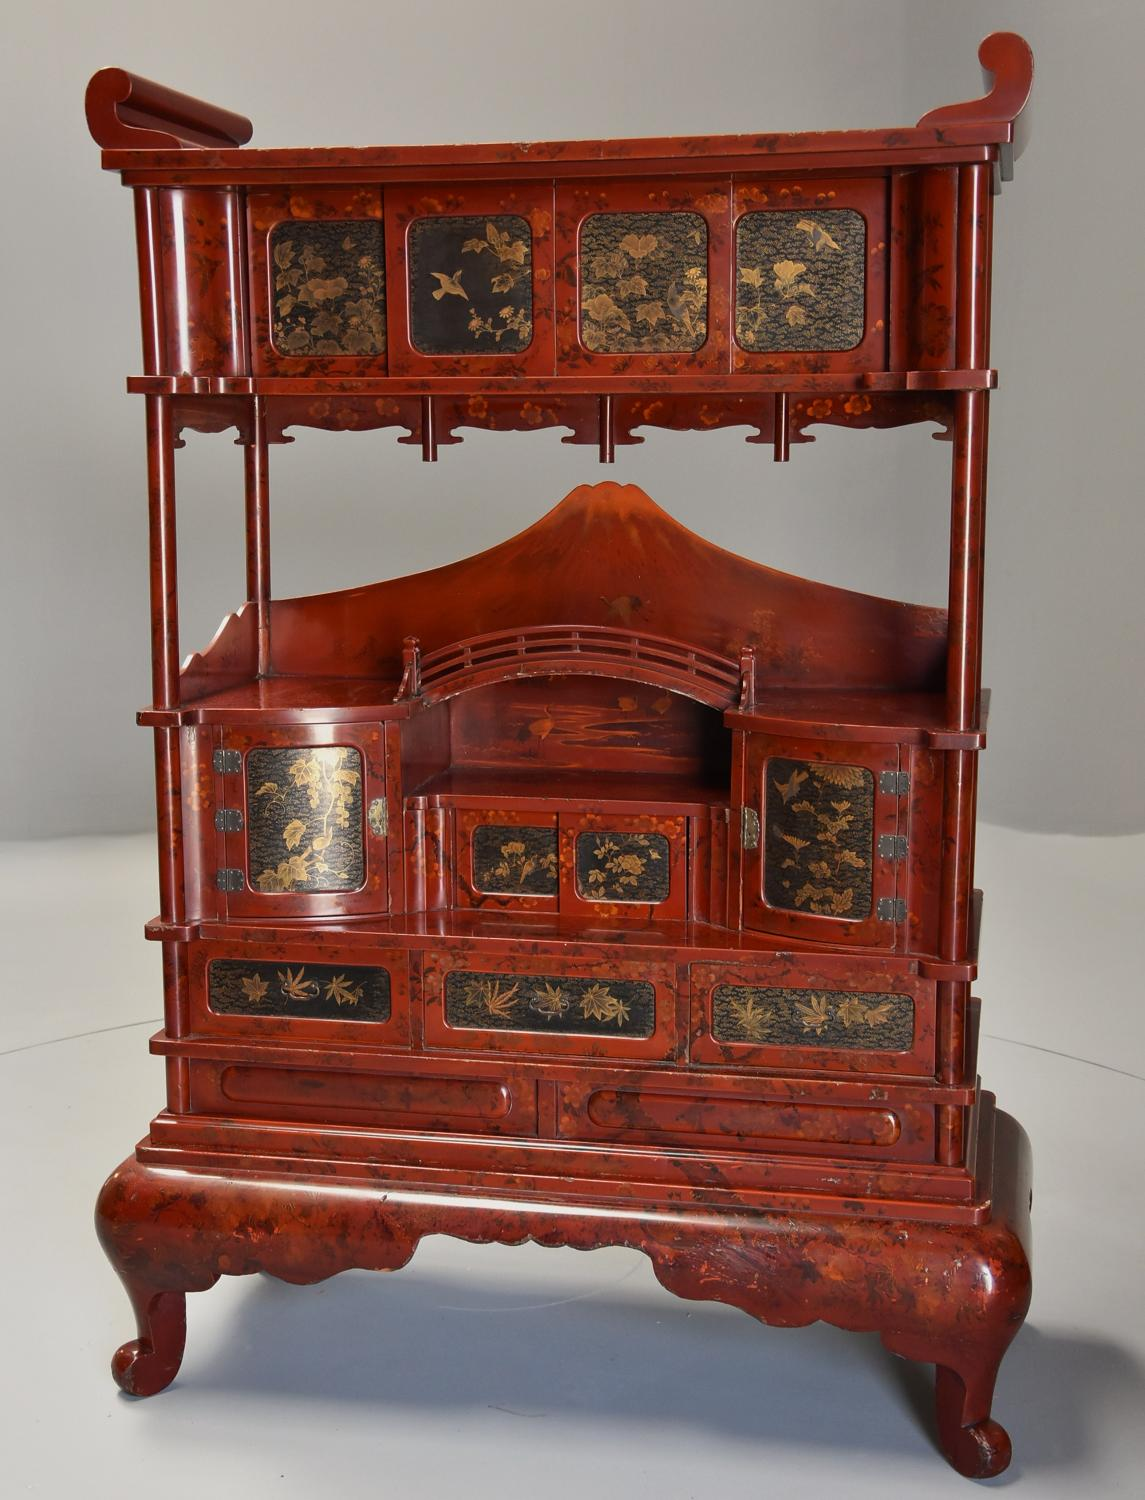 Early 20th century Japanese red lacquered shodana (cabinet)